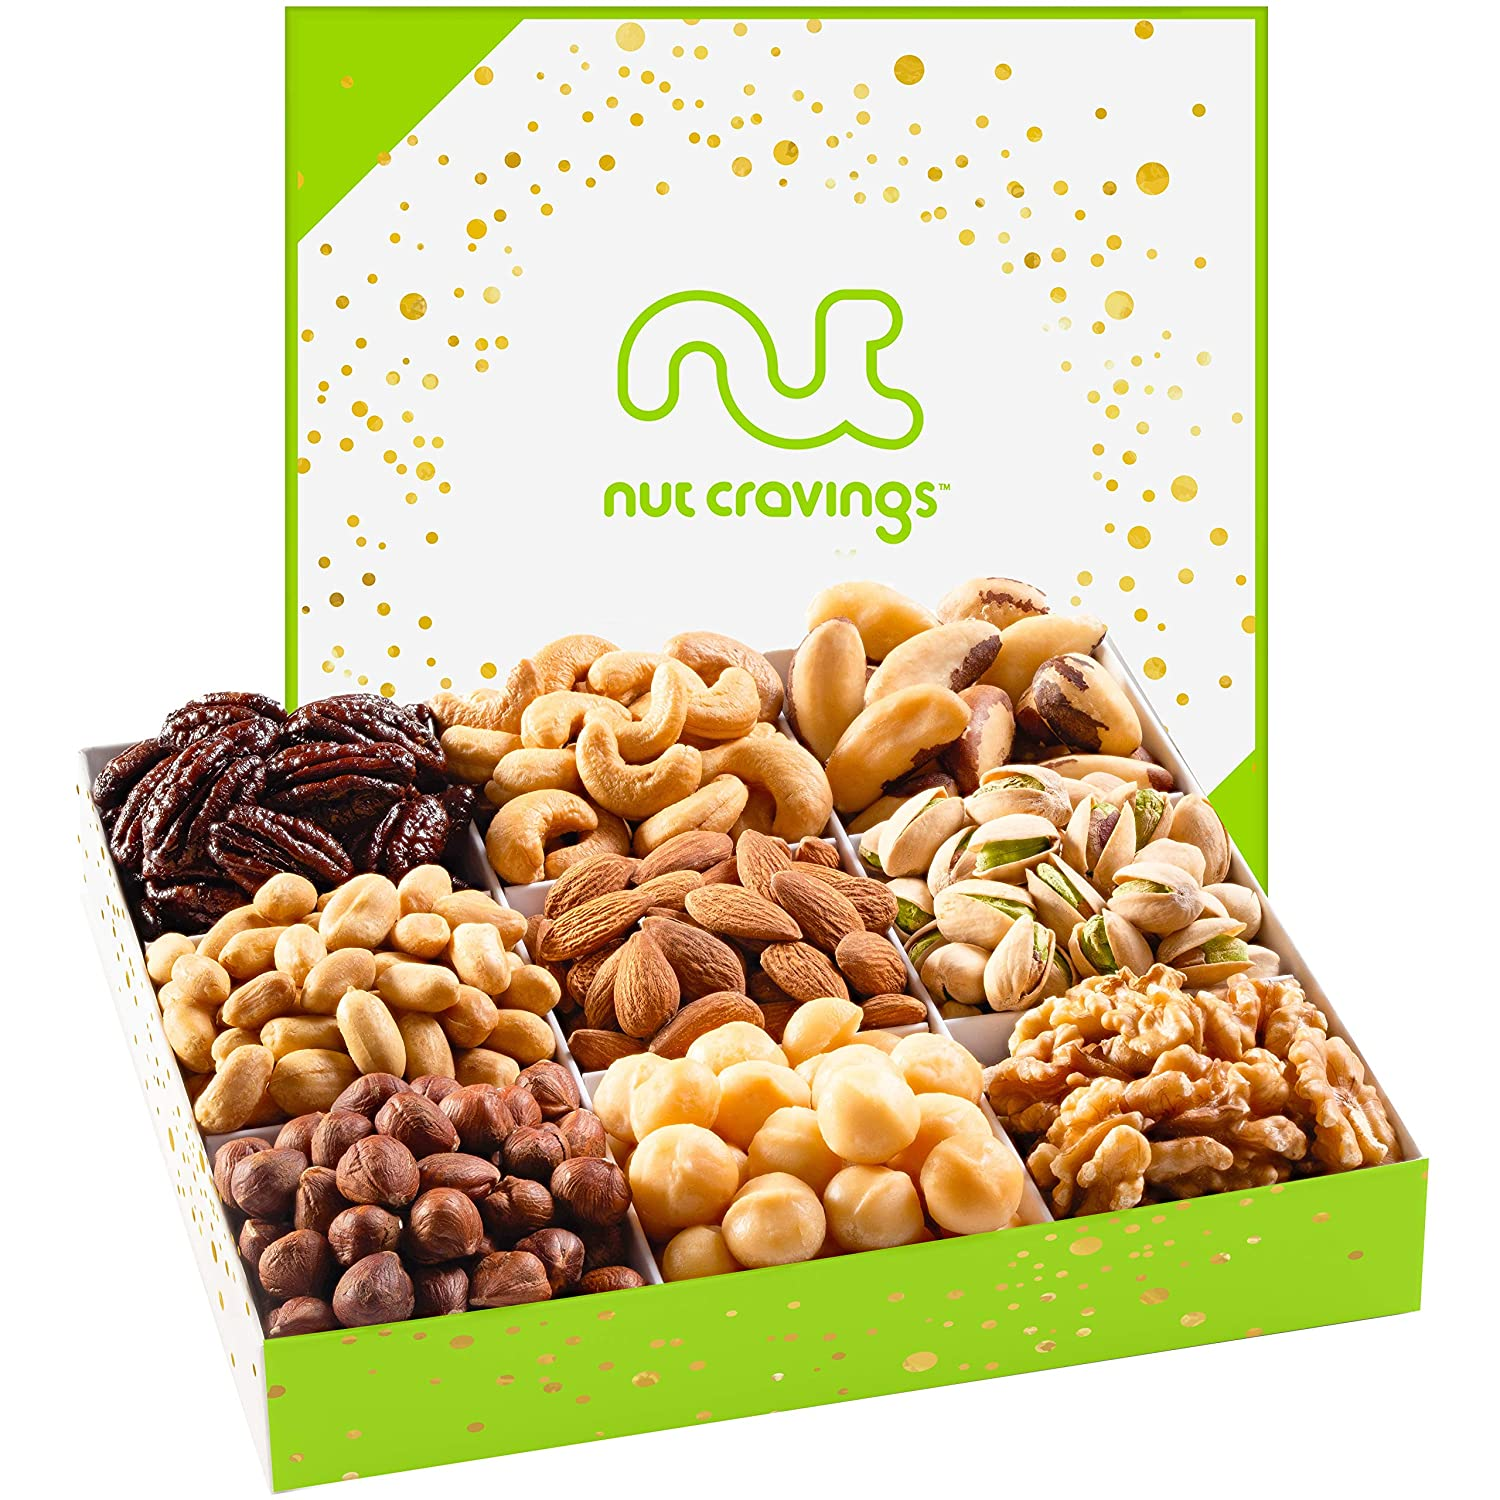 Gourmet Gift Basket Assortment, Fresh Nut Mix Tray (9 Variety) - Edible Care Package Set, Birthday Party Food Arrangement Platter - Healthy Snack Box for Families, Women, Men, Adults - Prime Delivery